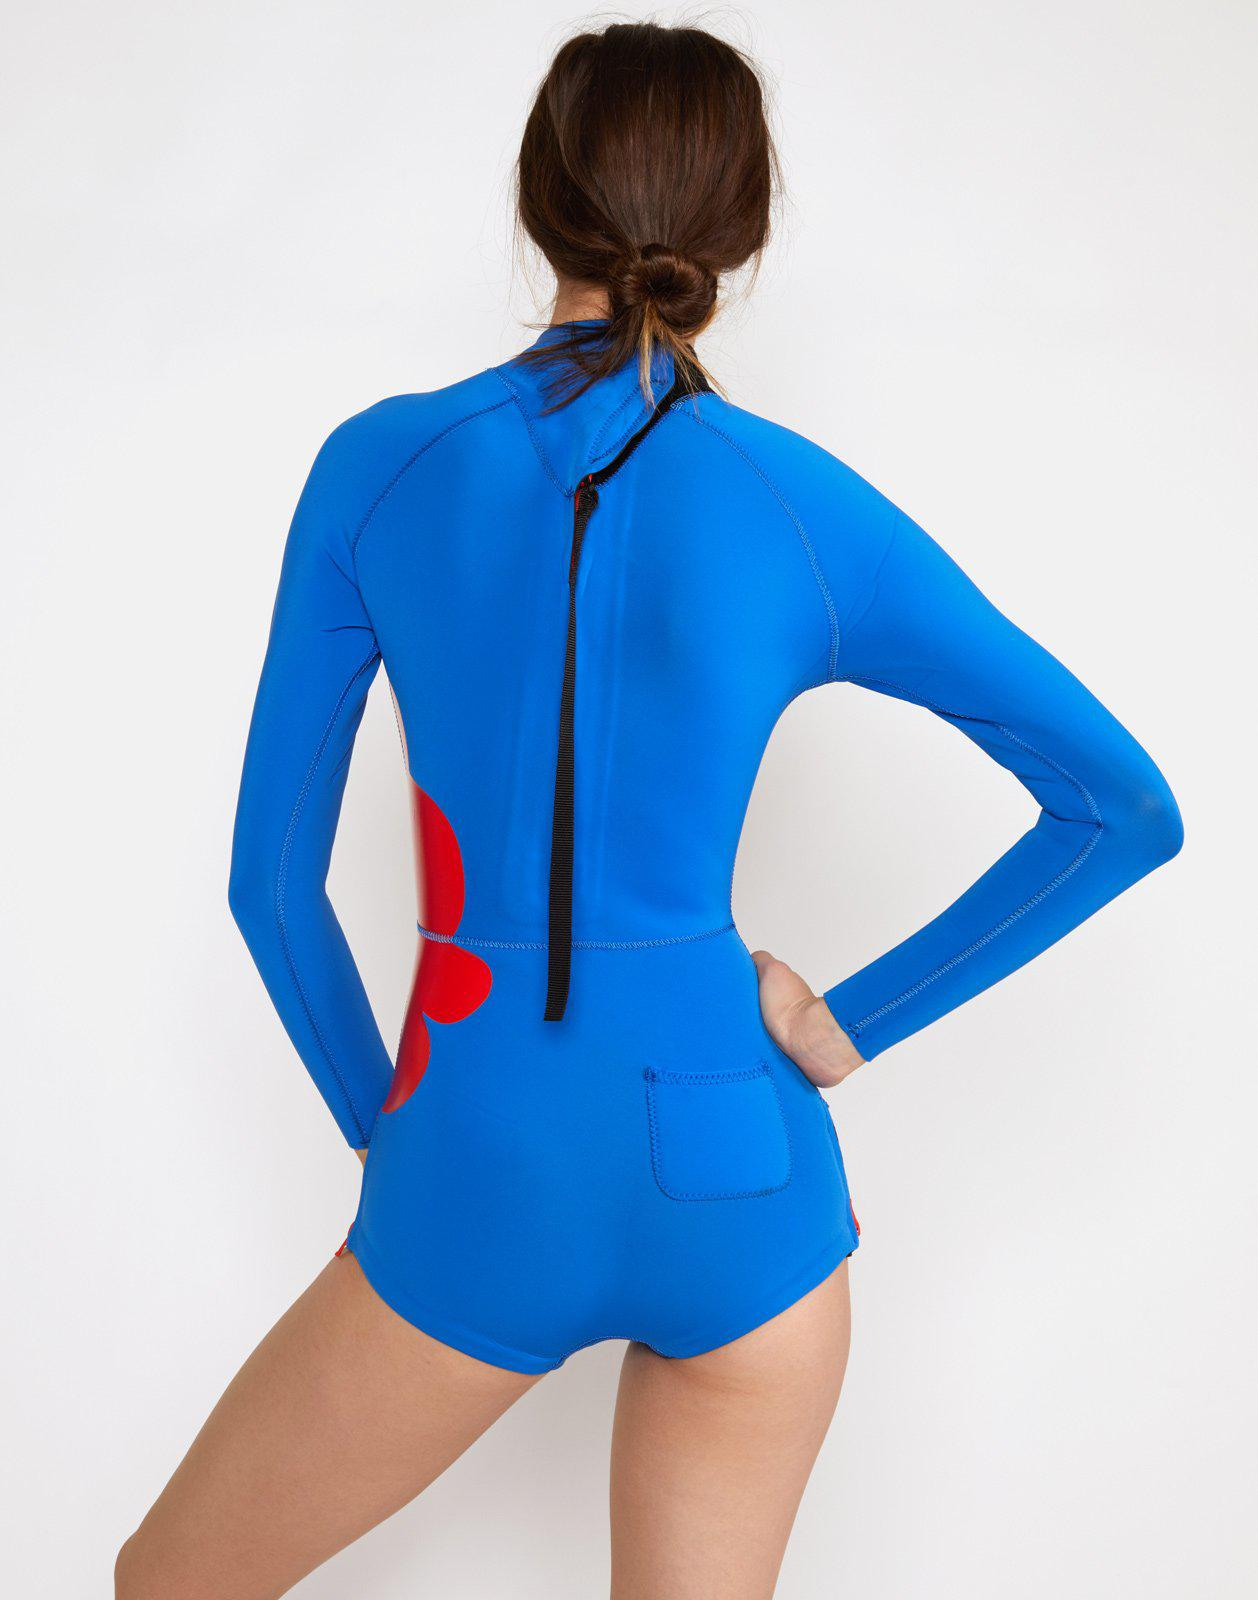 Large Placed Floral Wetsuit 2